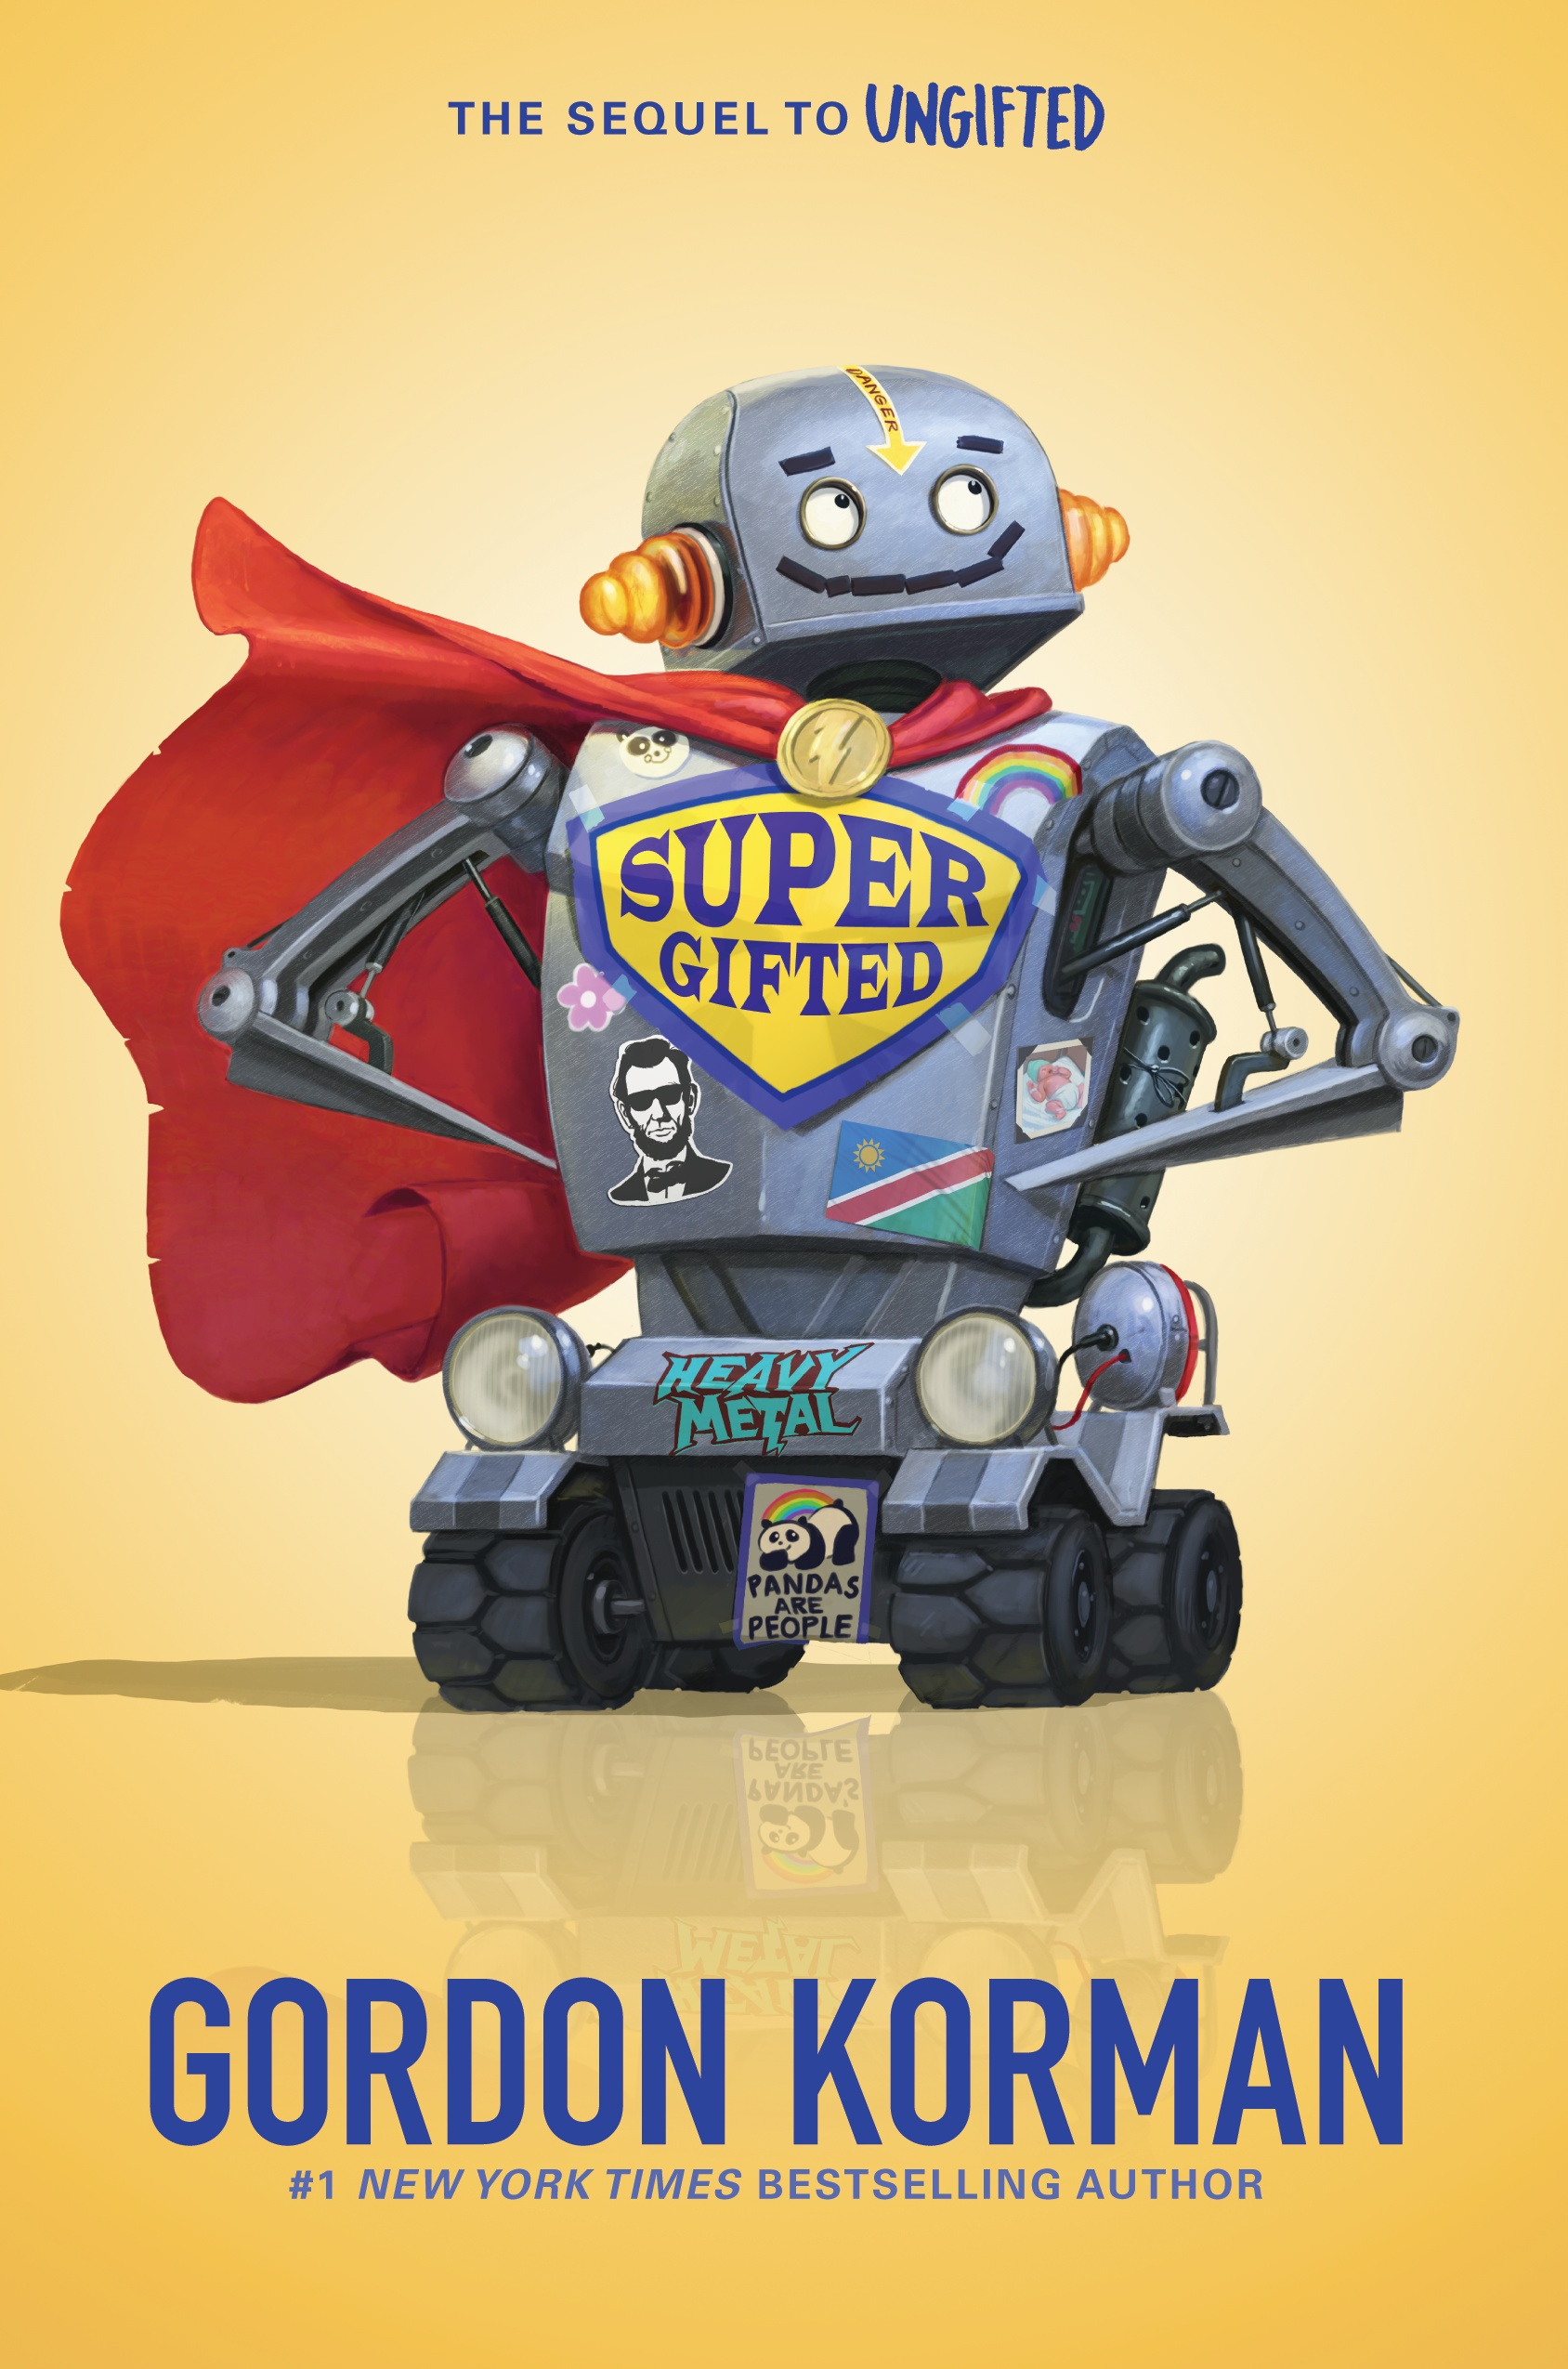 HAVE A SUPERGIFTED DAY!